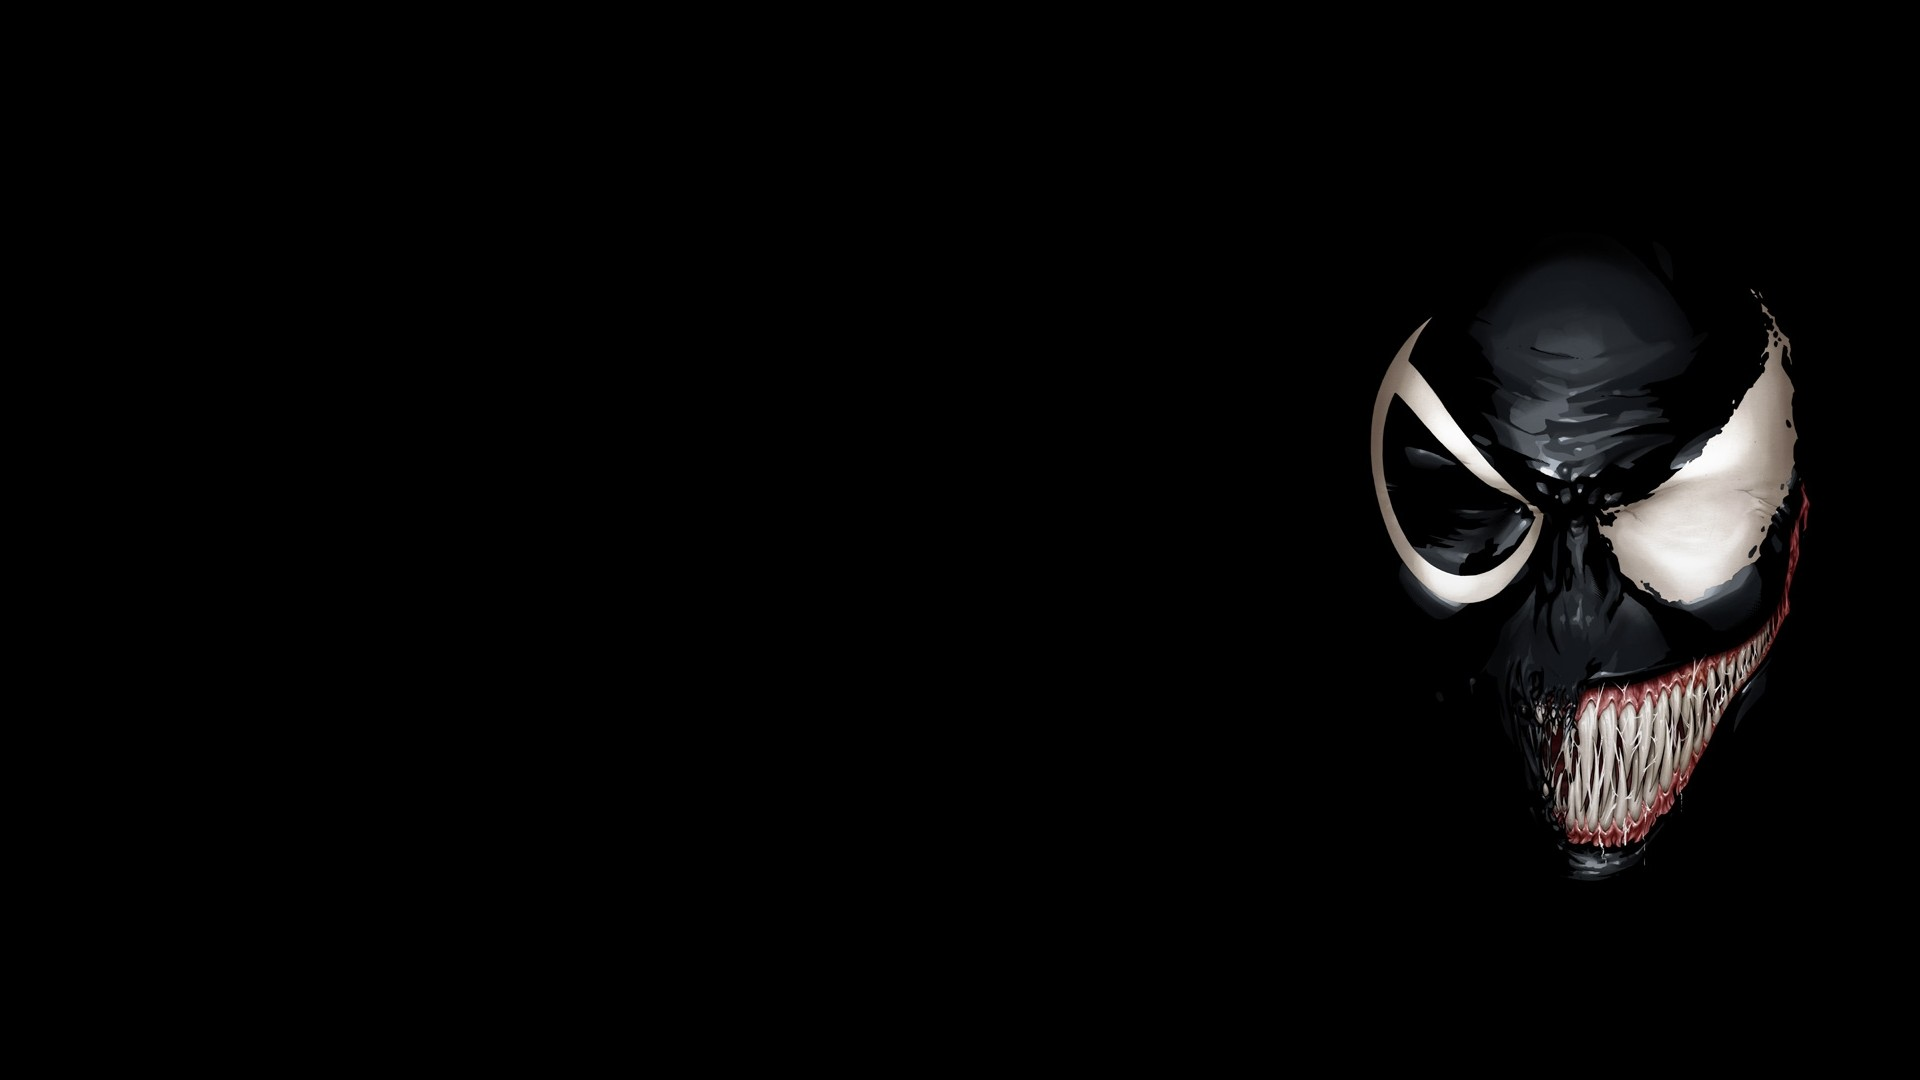 Res: 1920x1080, ... Wallpapers · Venom 100% Quality HD Background Images |  px  Background Images ...